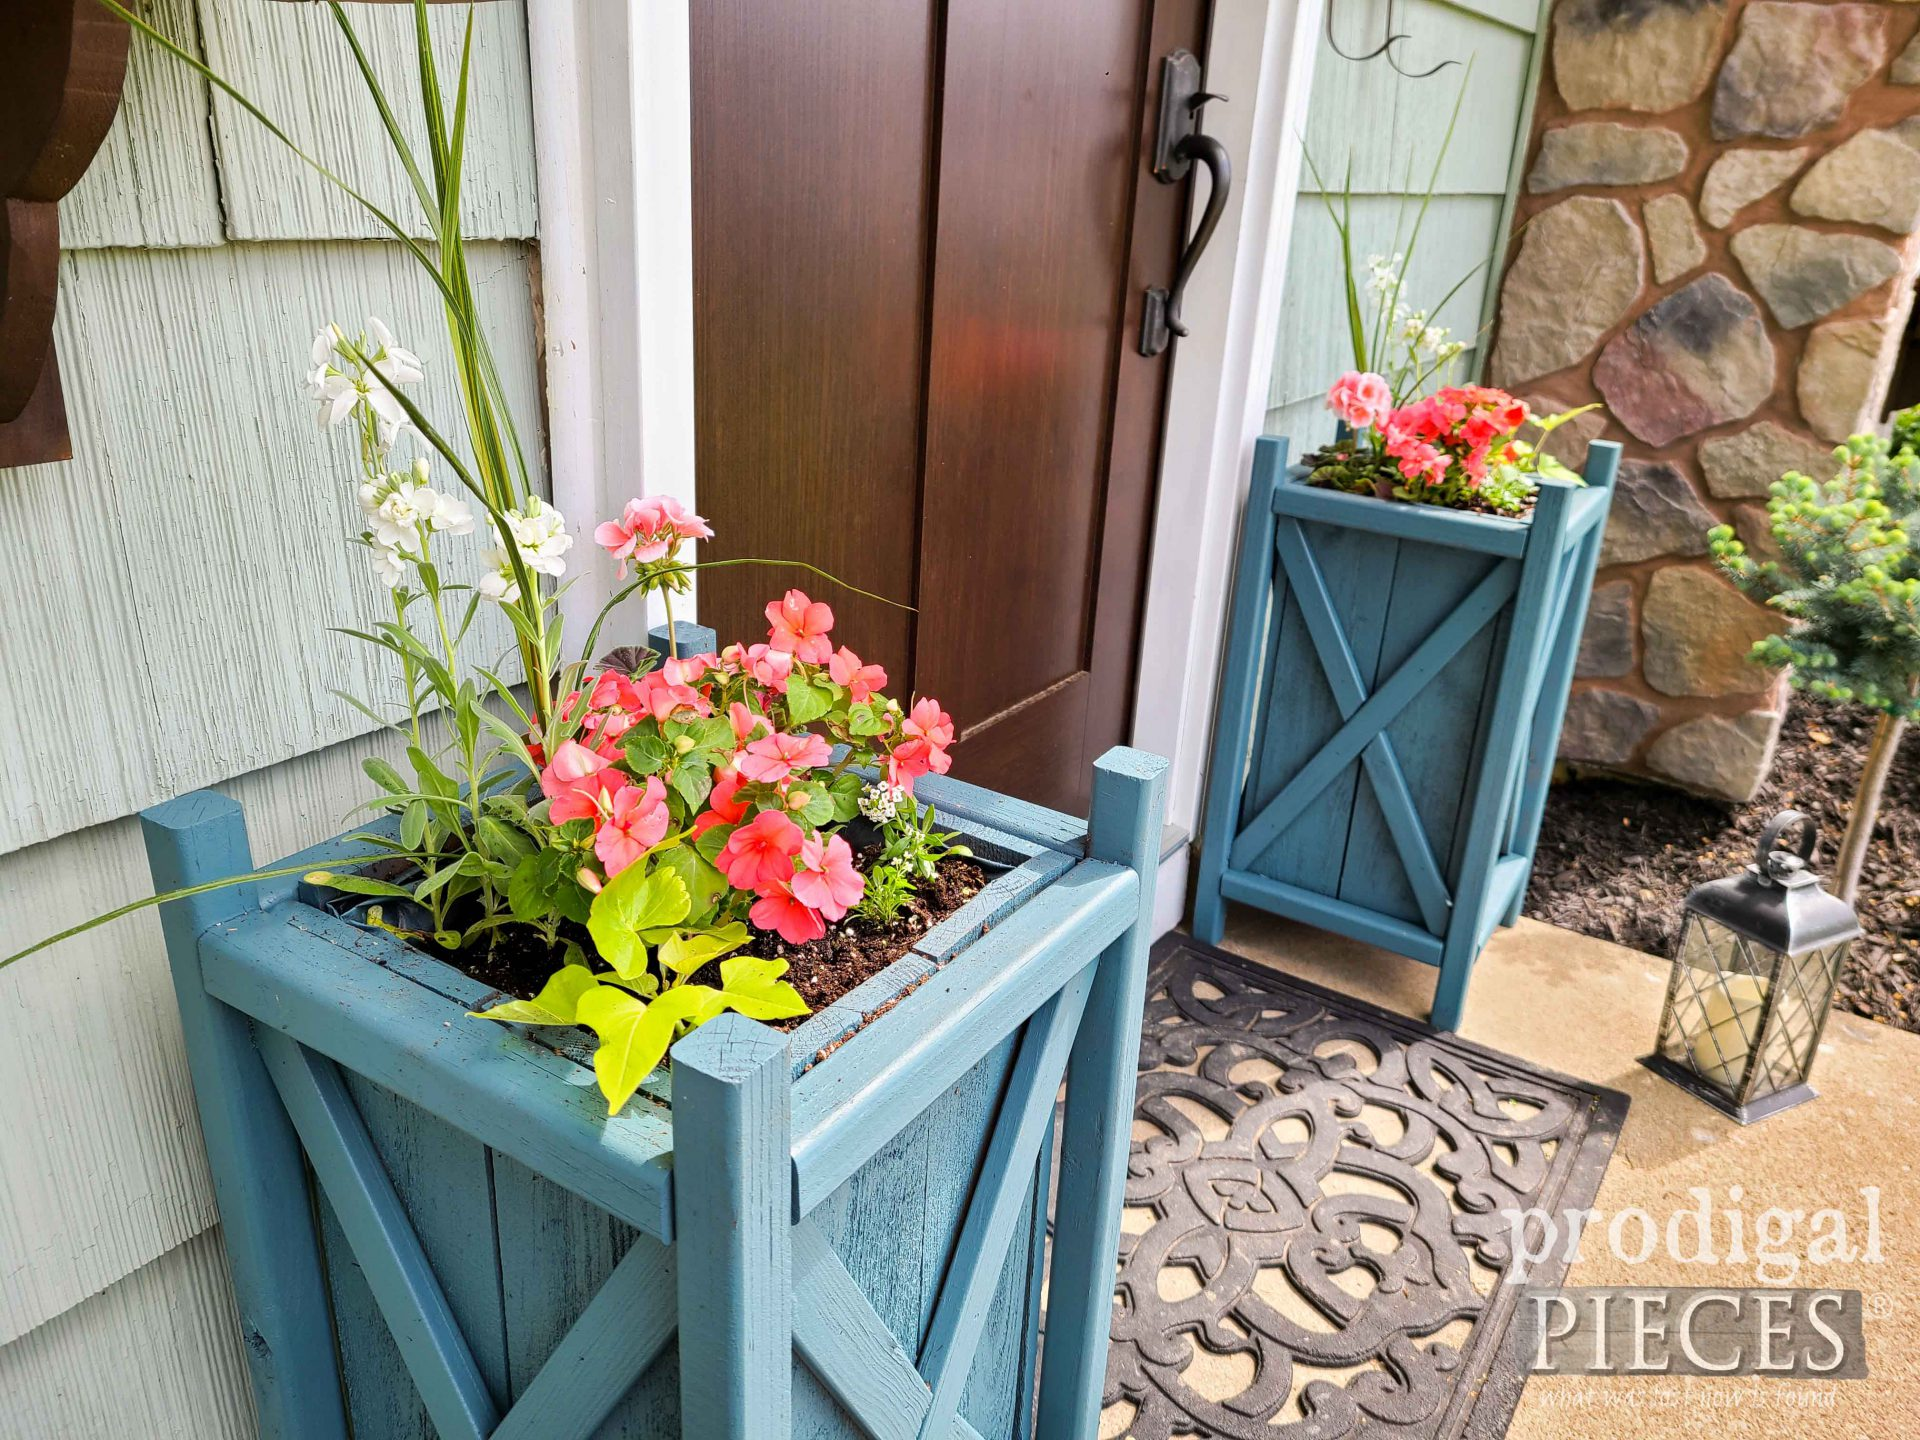 Farmhouse Style Planters with Free Build Plans by Larissa of Prodigal Pieces | prodigalpieces.com #prodigalpieces #home #diy #woodworking #home